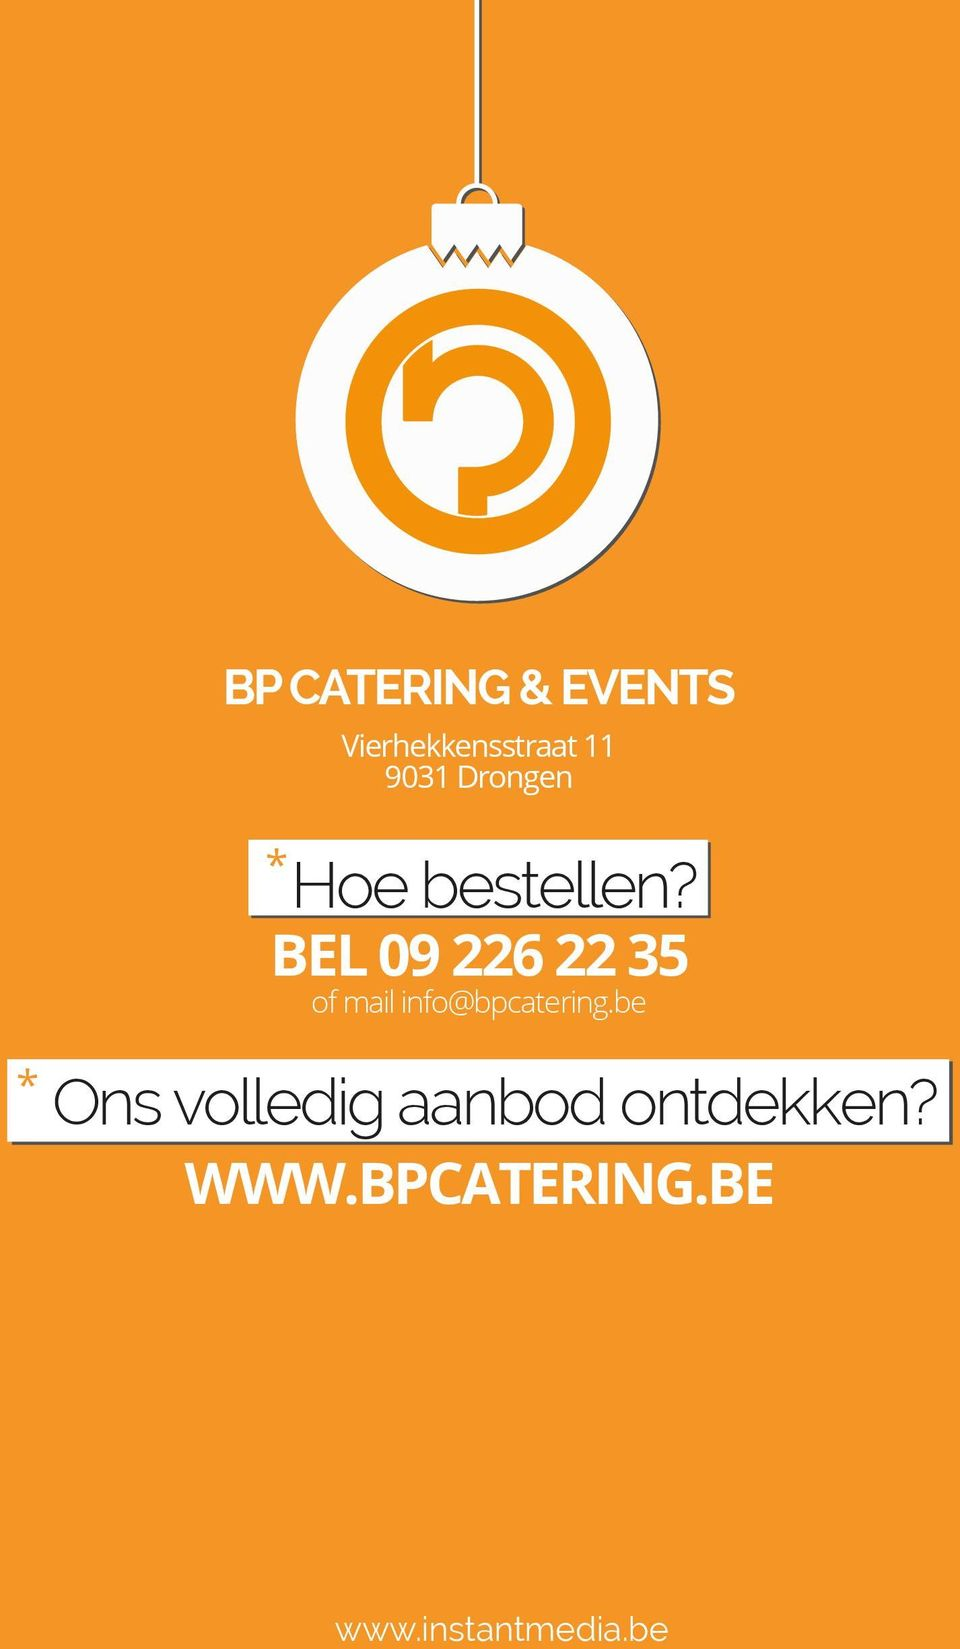 BEL 09 226 22 35 of mail info@bpcatering.